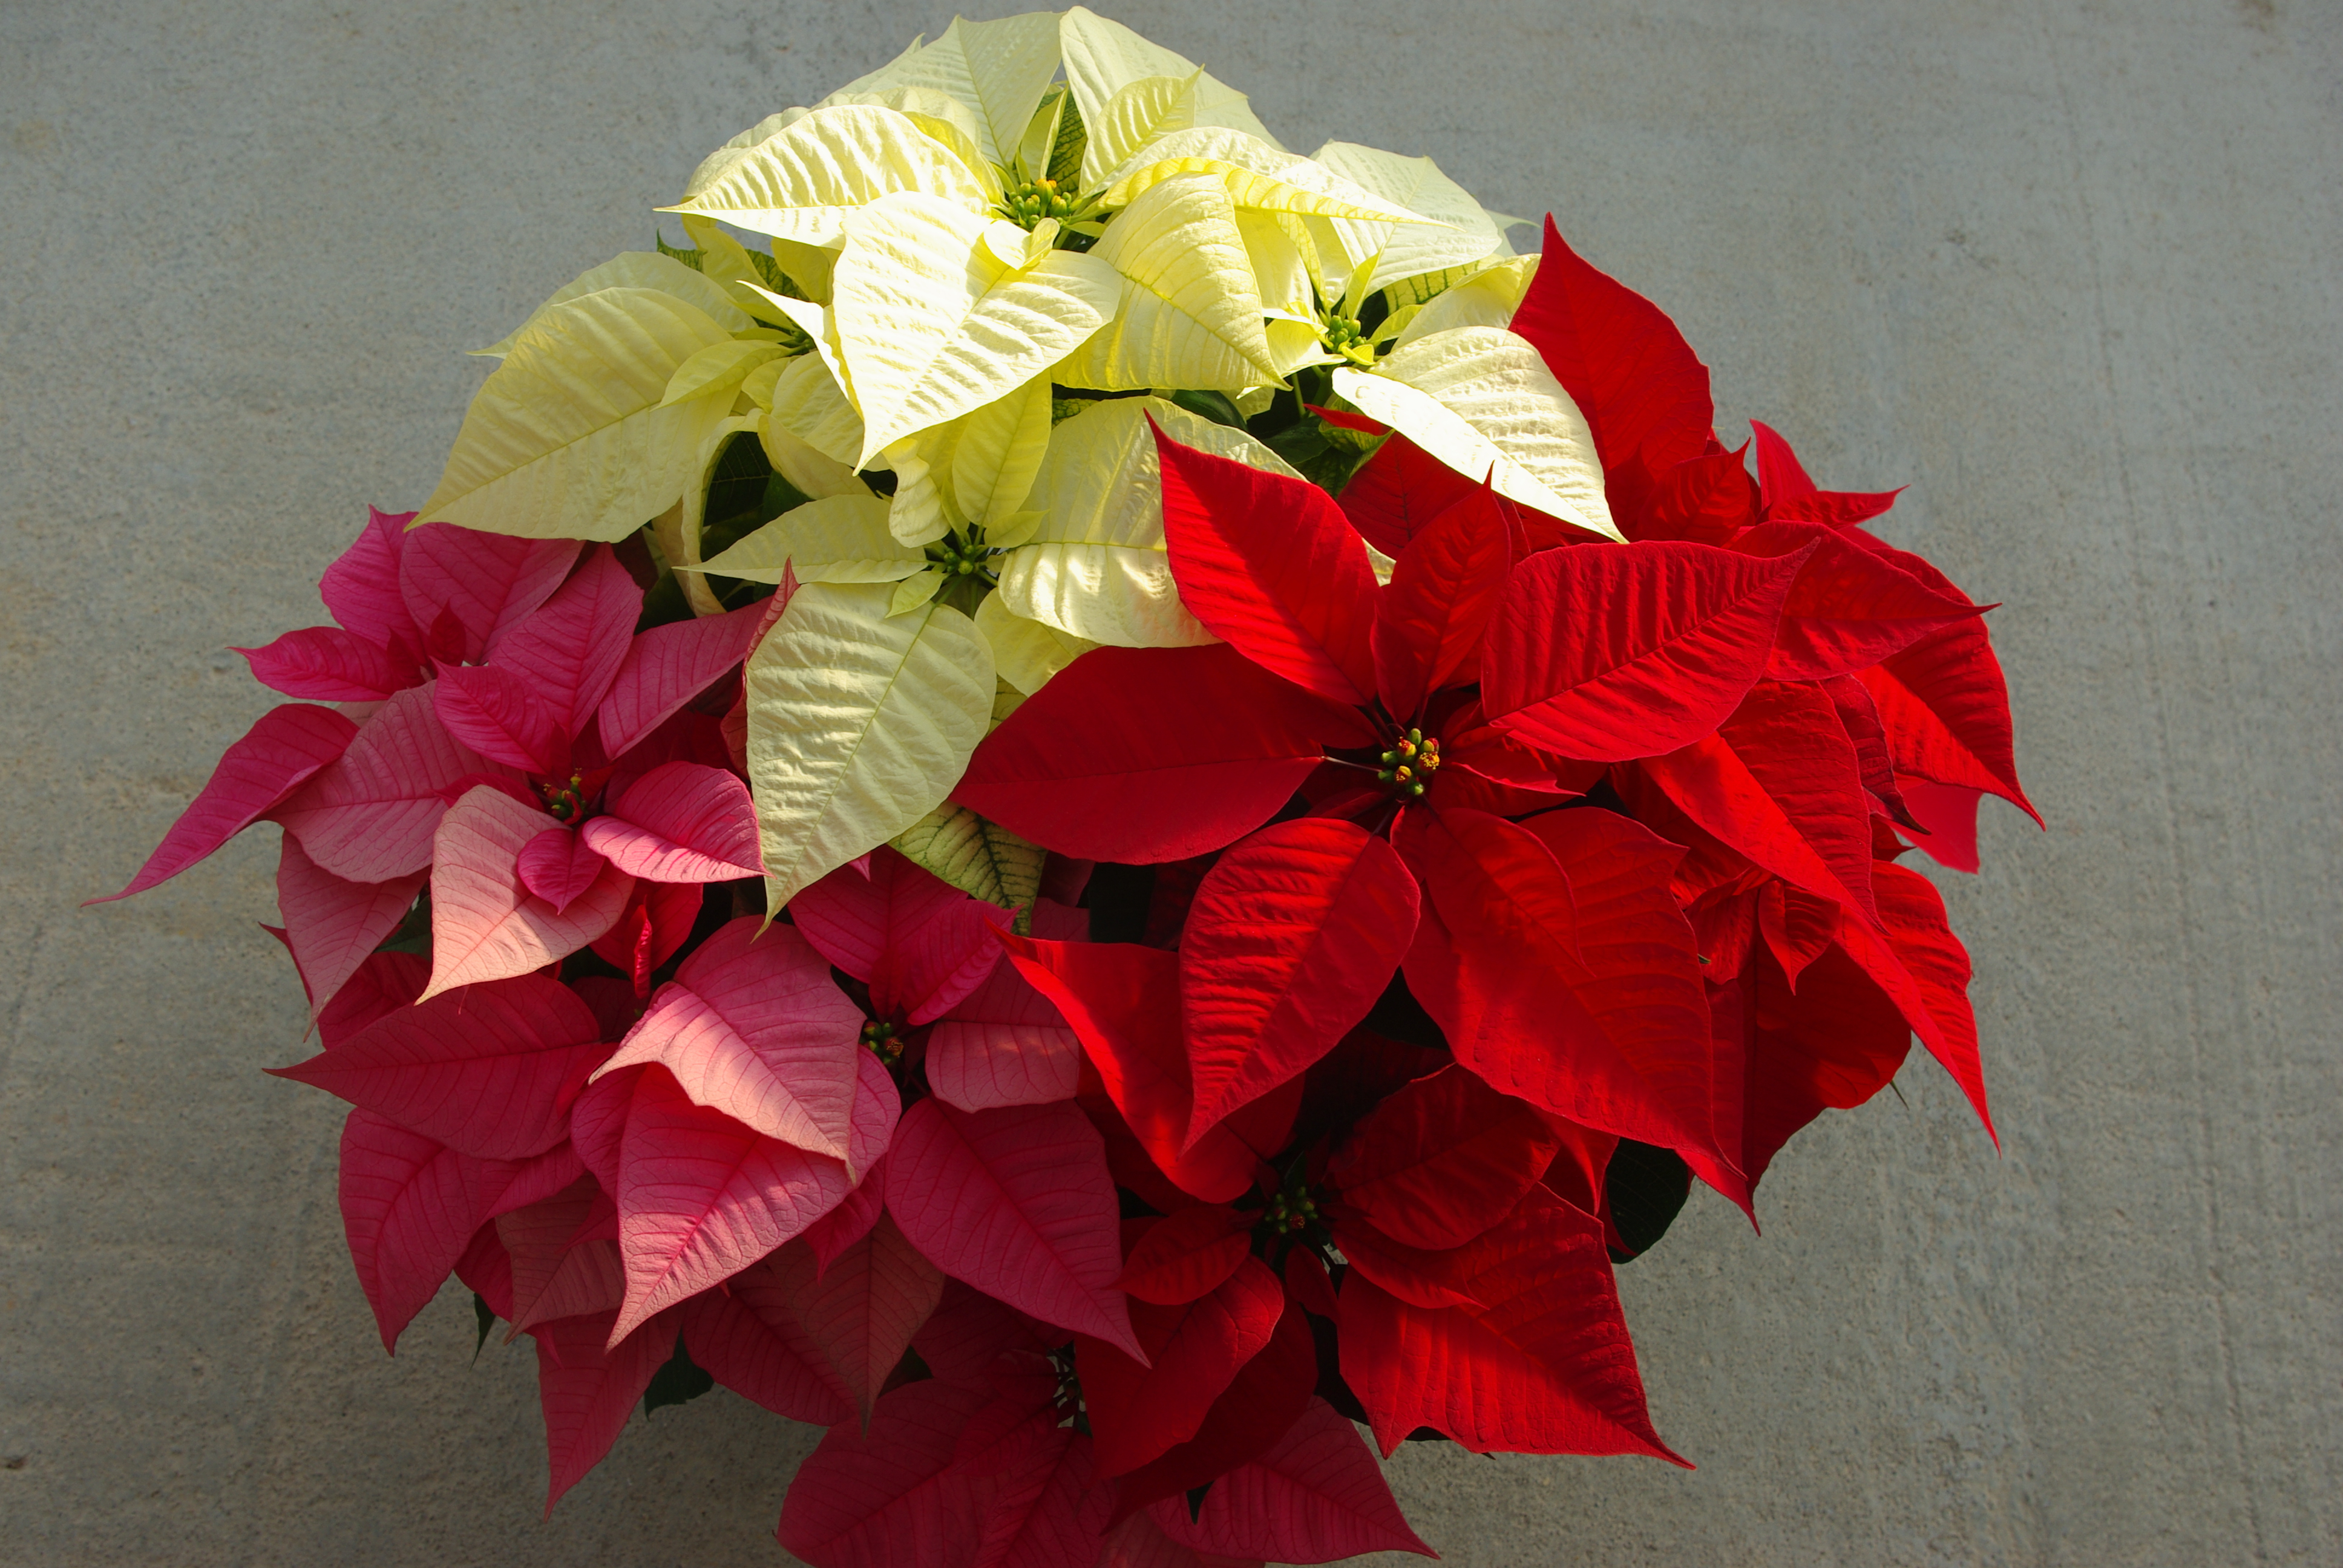 Red, white, and pink poinsettia